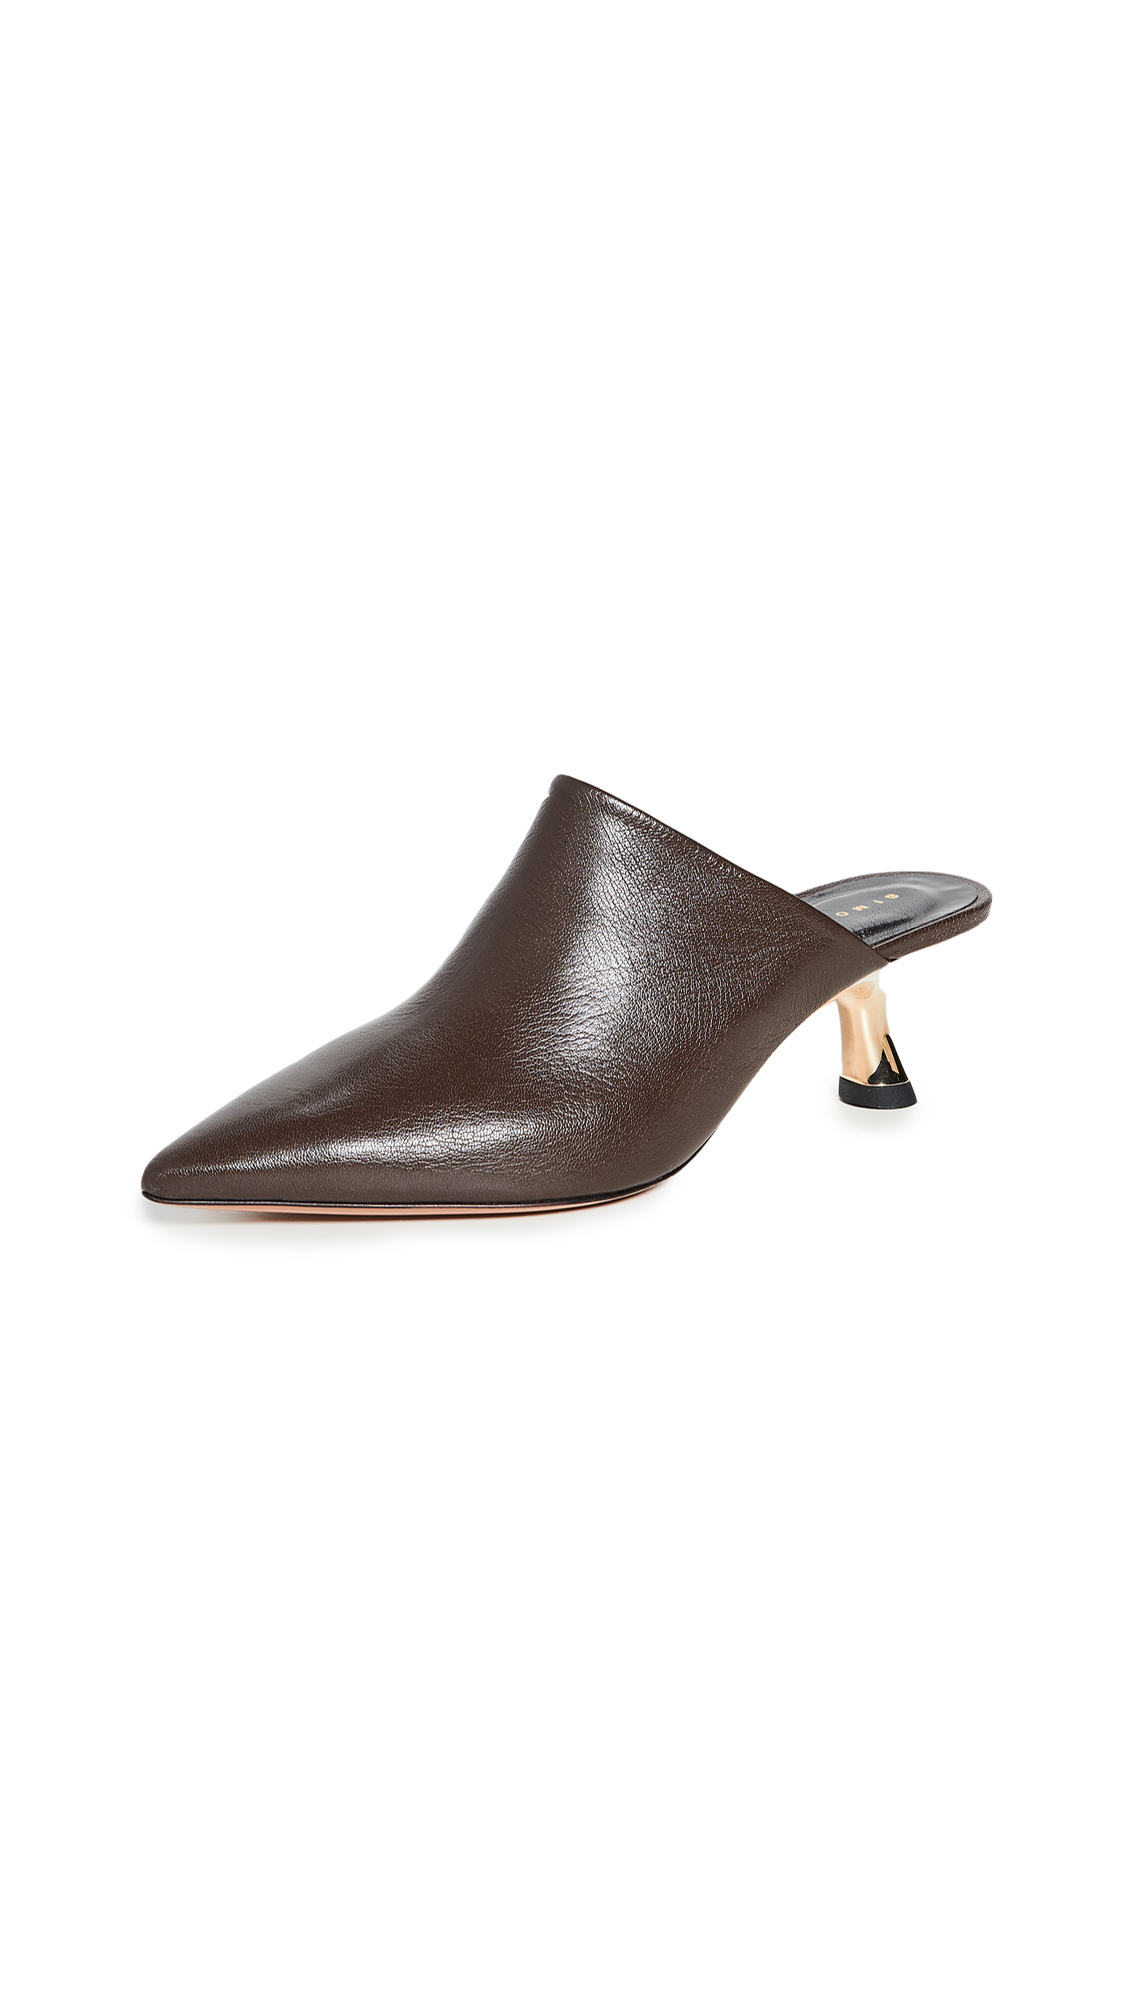 Simon Miller Kicker Tee Heel Mules - 50% Off Sale